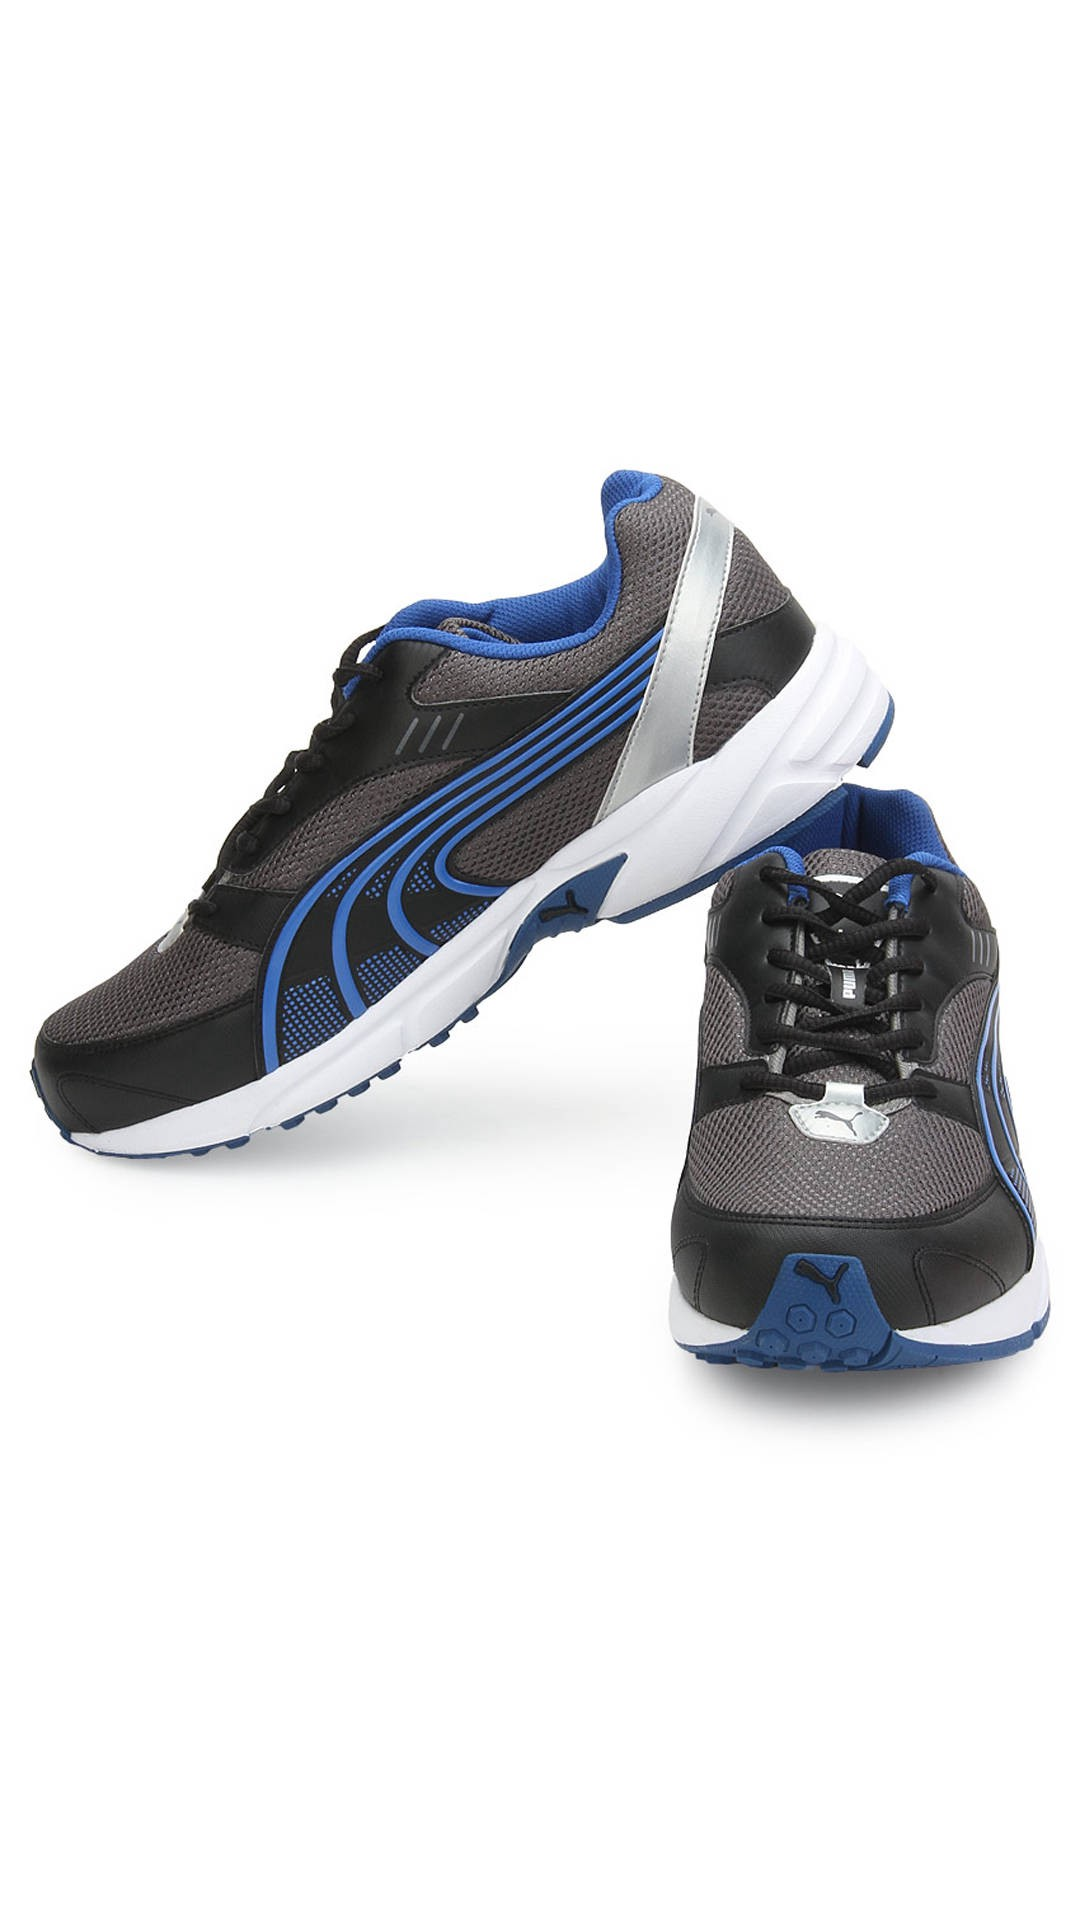 d92289fdf19c ... sale retailer df8ef c9a80 Buy puma black and blue sports shoes only in  1299 rs ...